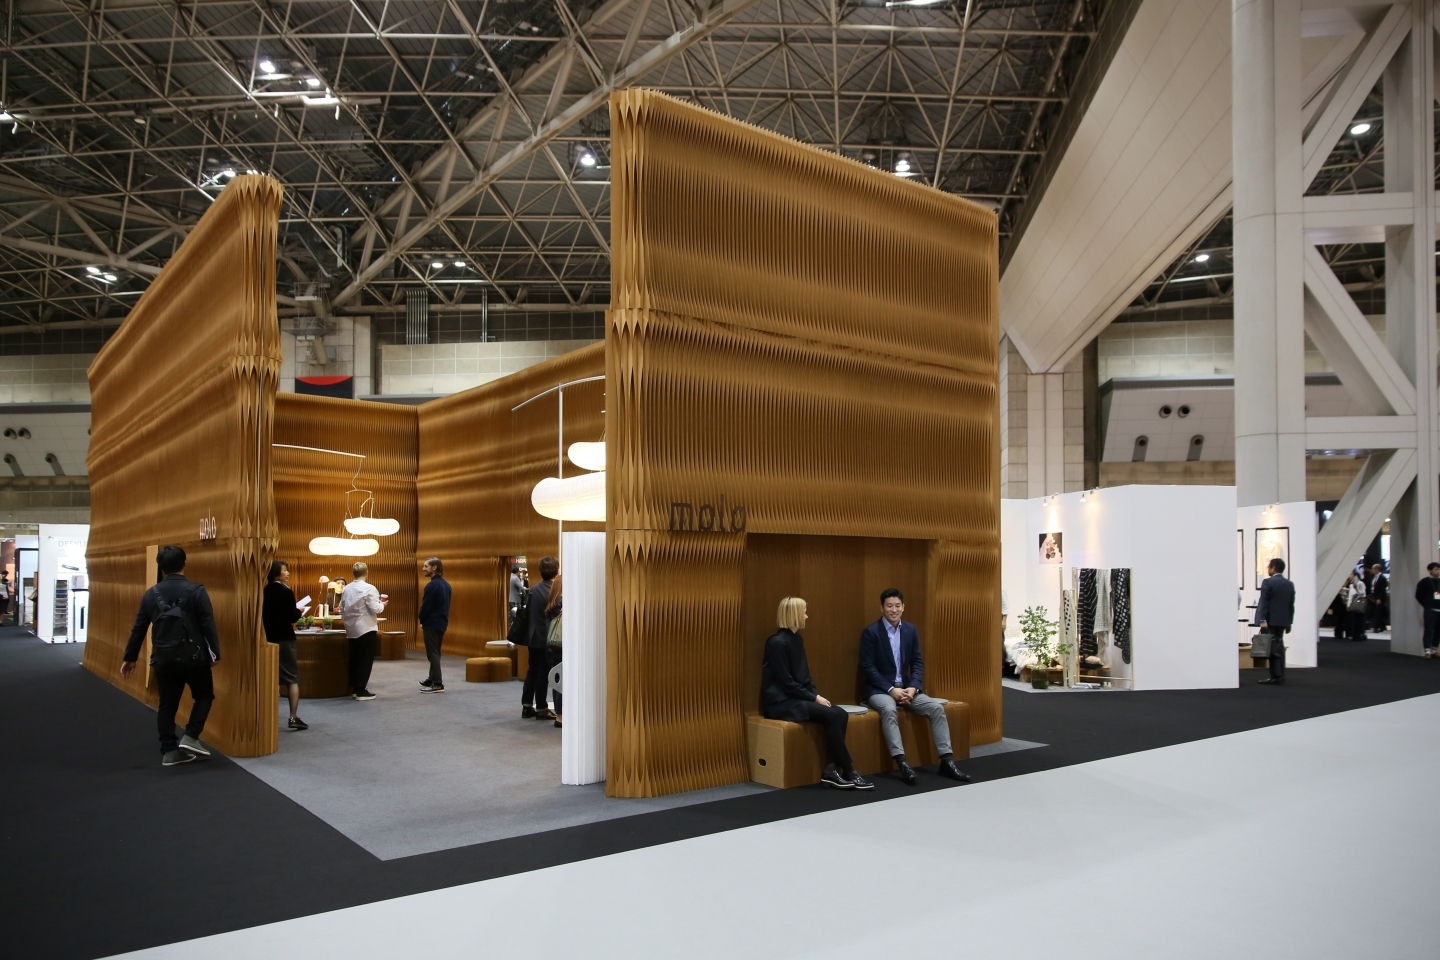 paper partitions / accordion wall by molo - molo's installation at IFFT in Tokyo, Japan